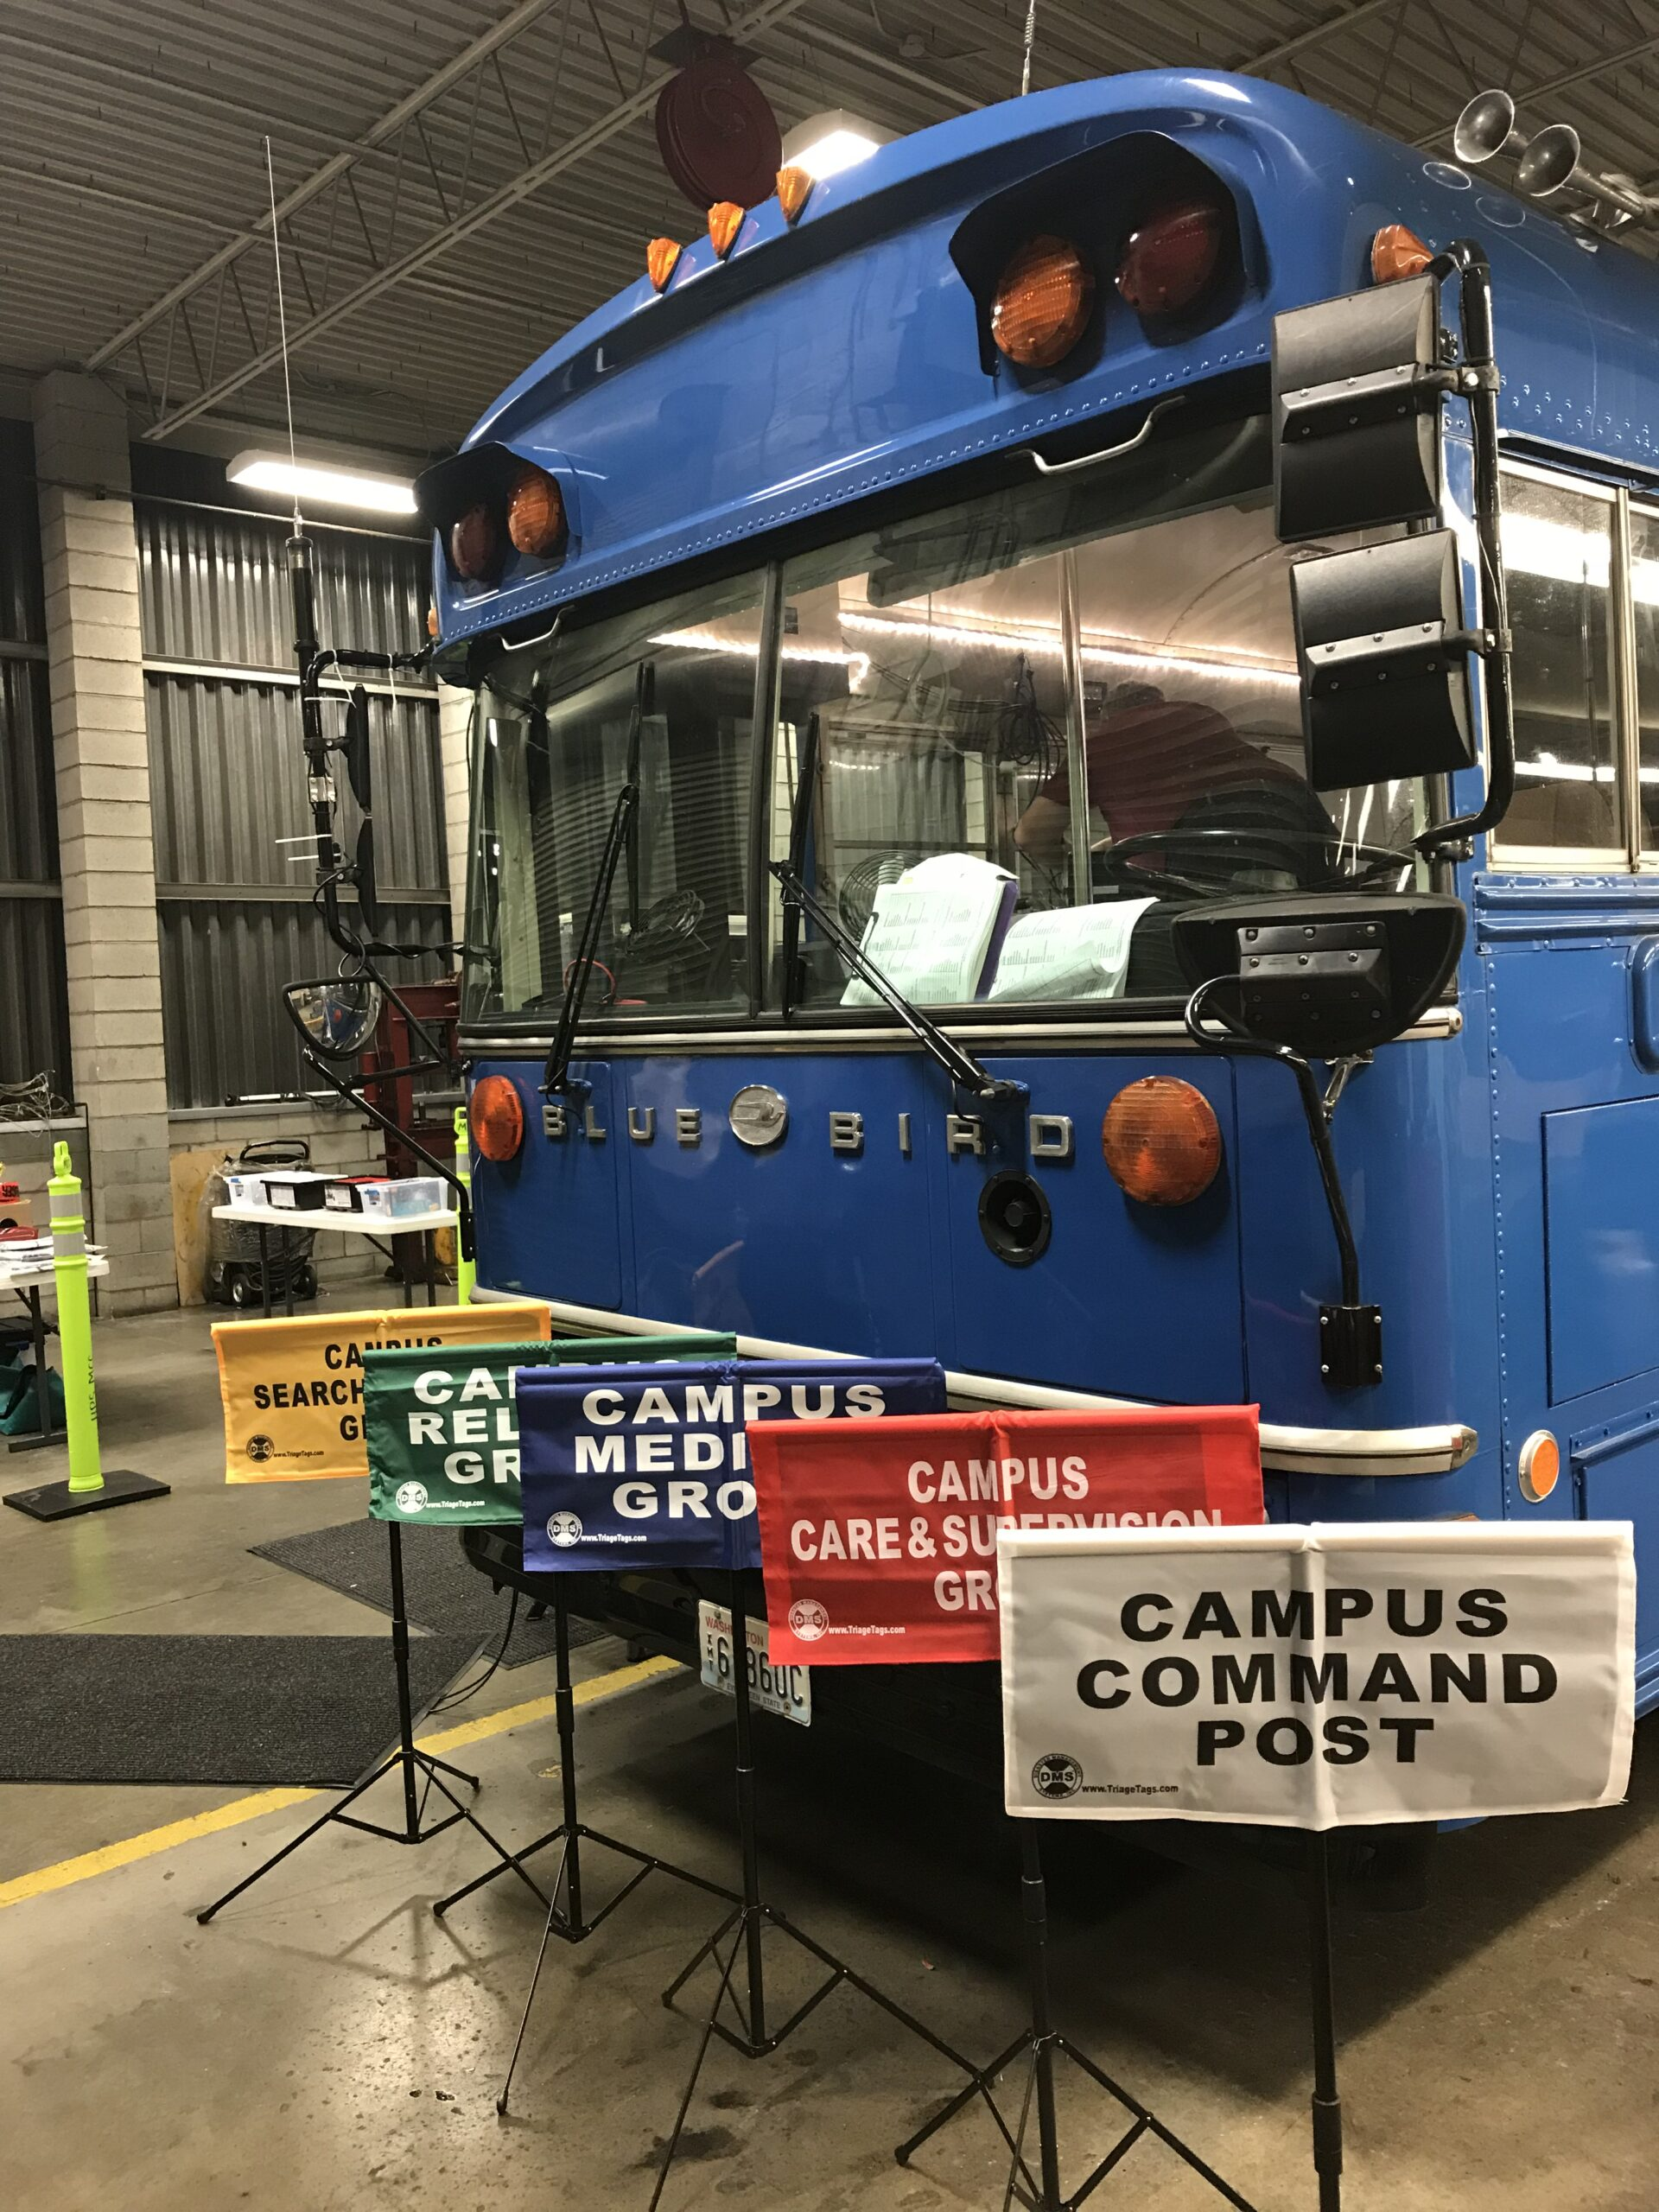 Ham radio inspired Mark Finstrom to transform an 85-passenger bus into a fully loaded mobile emergency ops center.